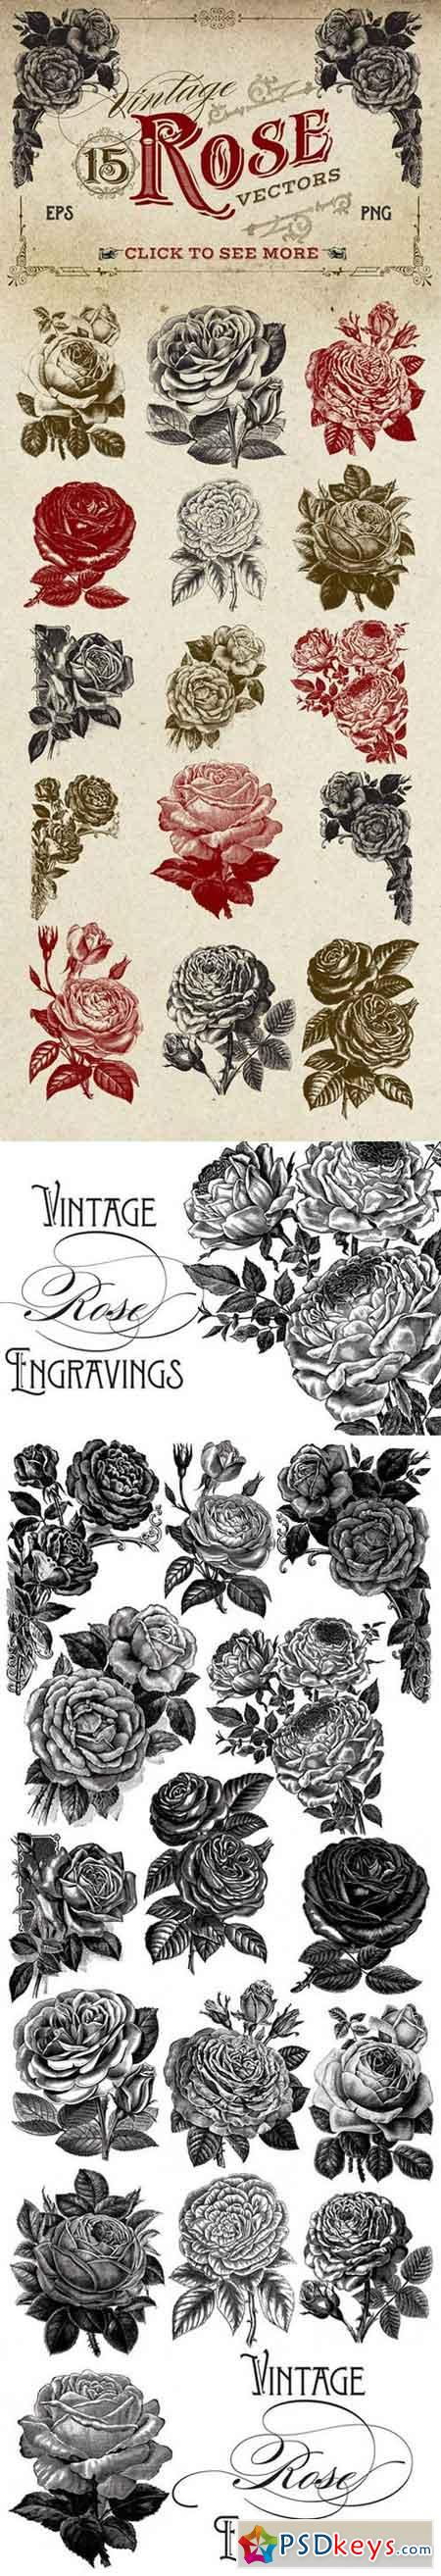 Vintage Rose Vector Graphics 260145